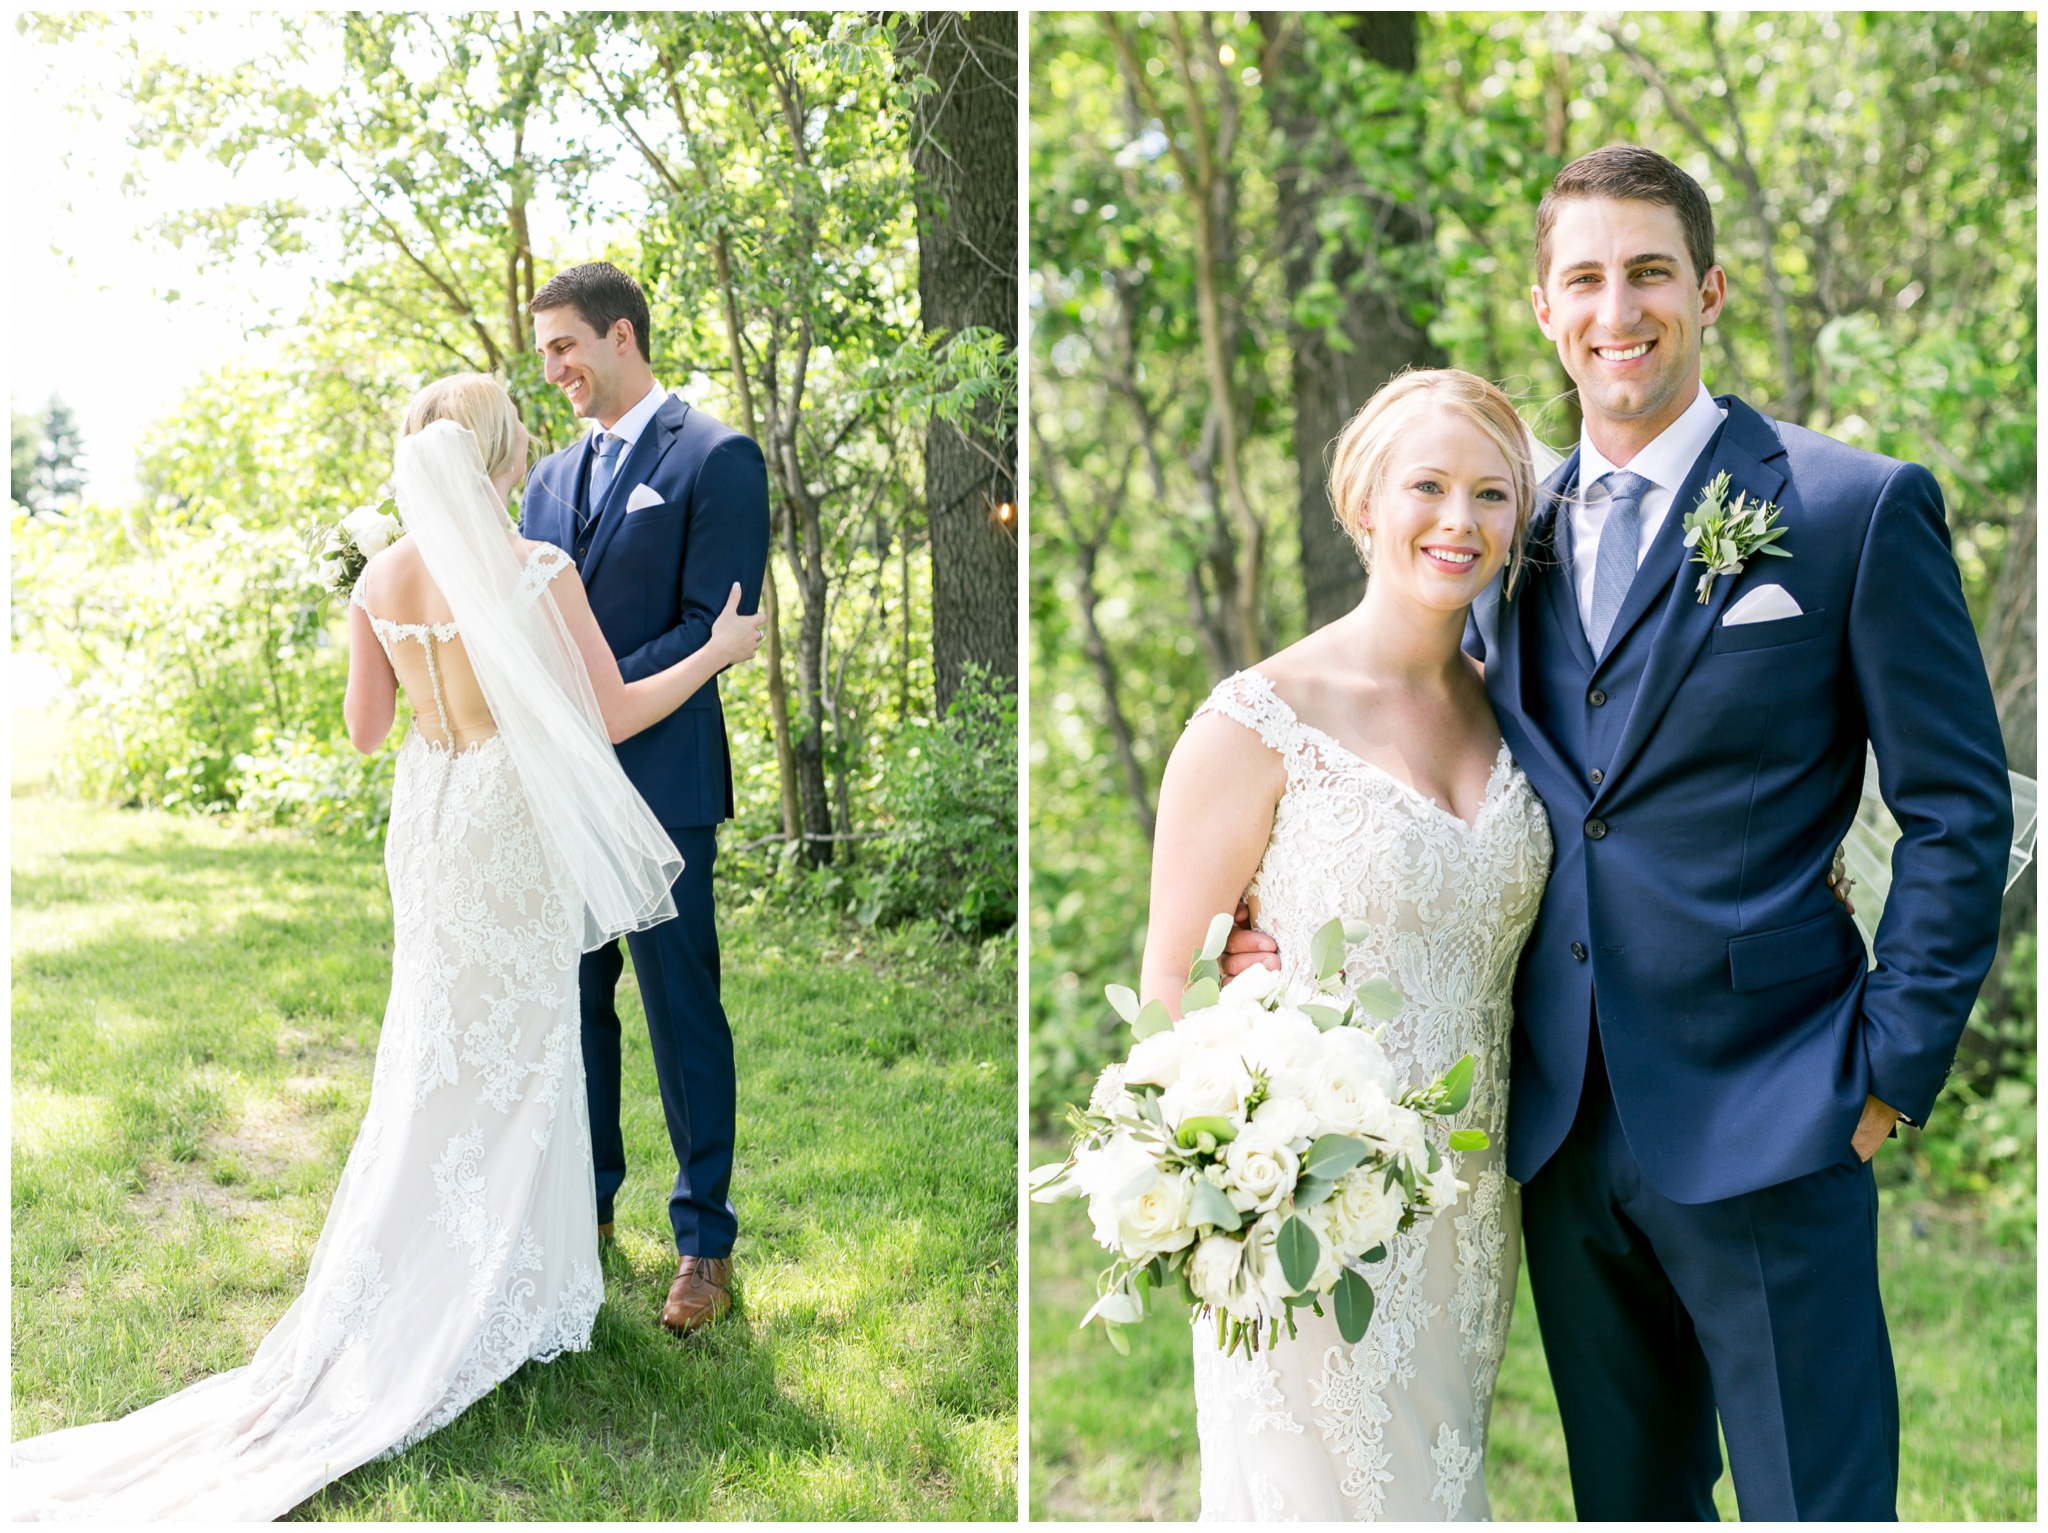 private_estate_wedding_stoughton_wisconsin_wedding_caynay_photo_3834.jpg